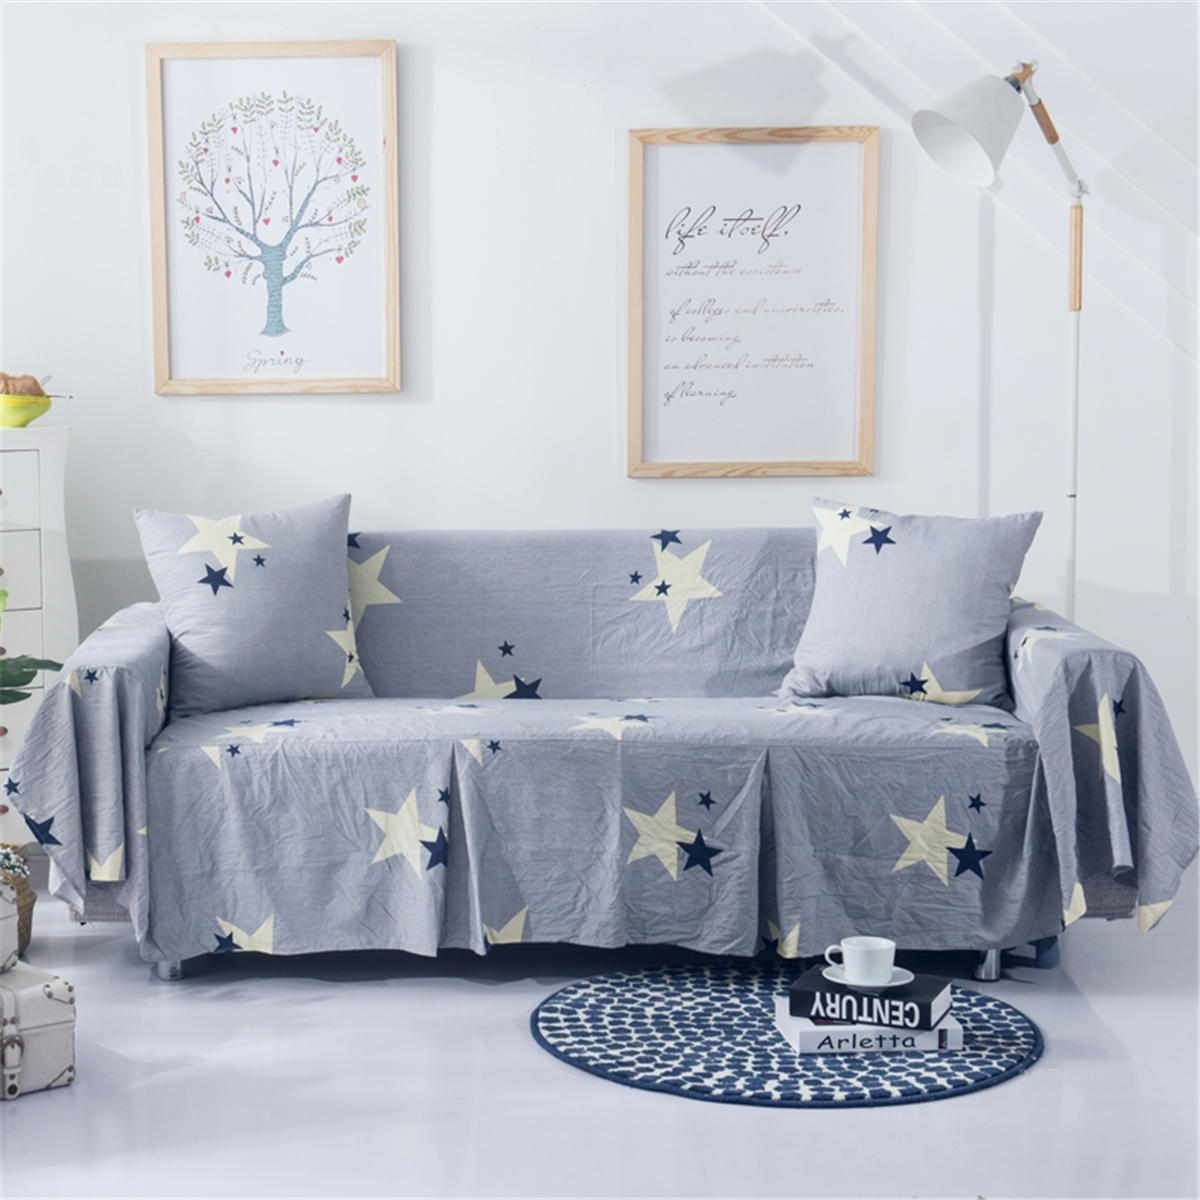 Miraculous 1 2 3 Seaters Chair Covers Sofa Covers Star Furniture Couch Protectors Chair Throw Mats Squirreltailoven Fun Painted Chair Ideas Images Squirreltailovenorg